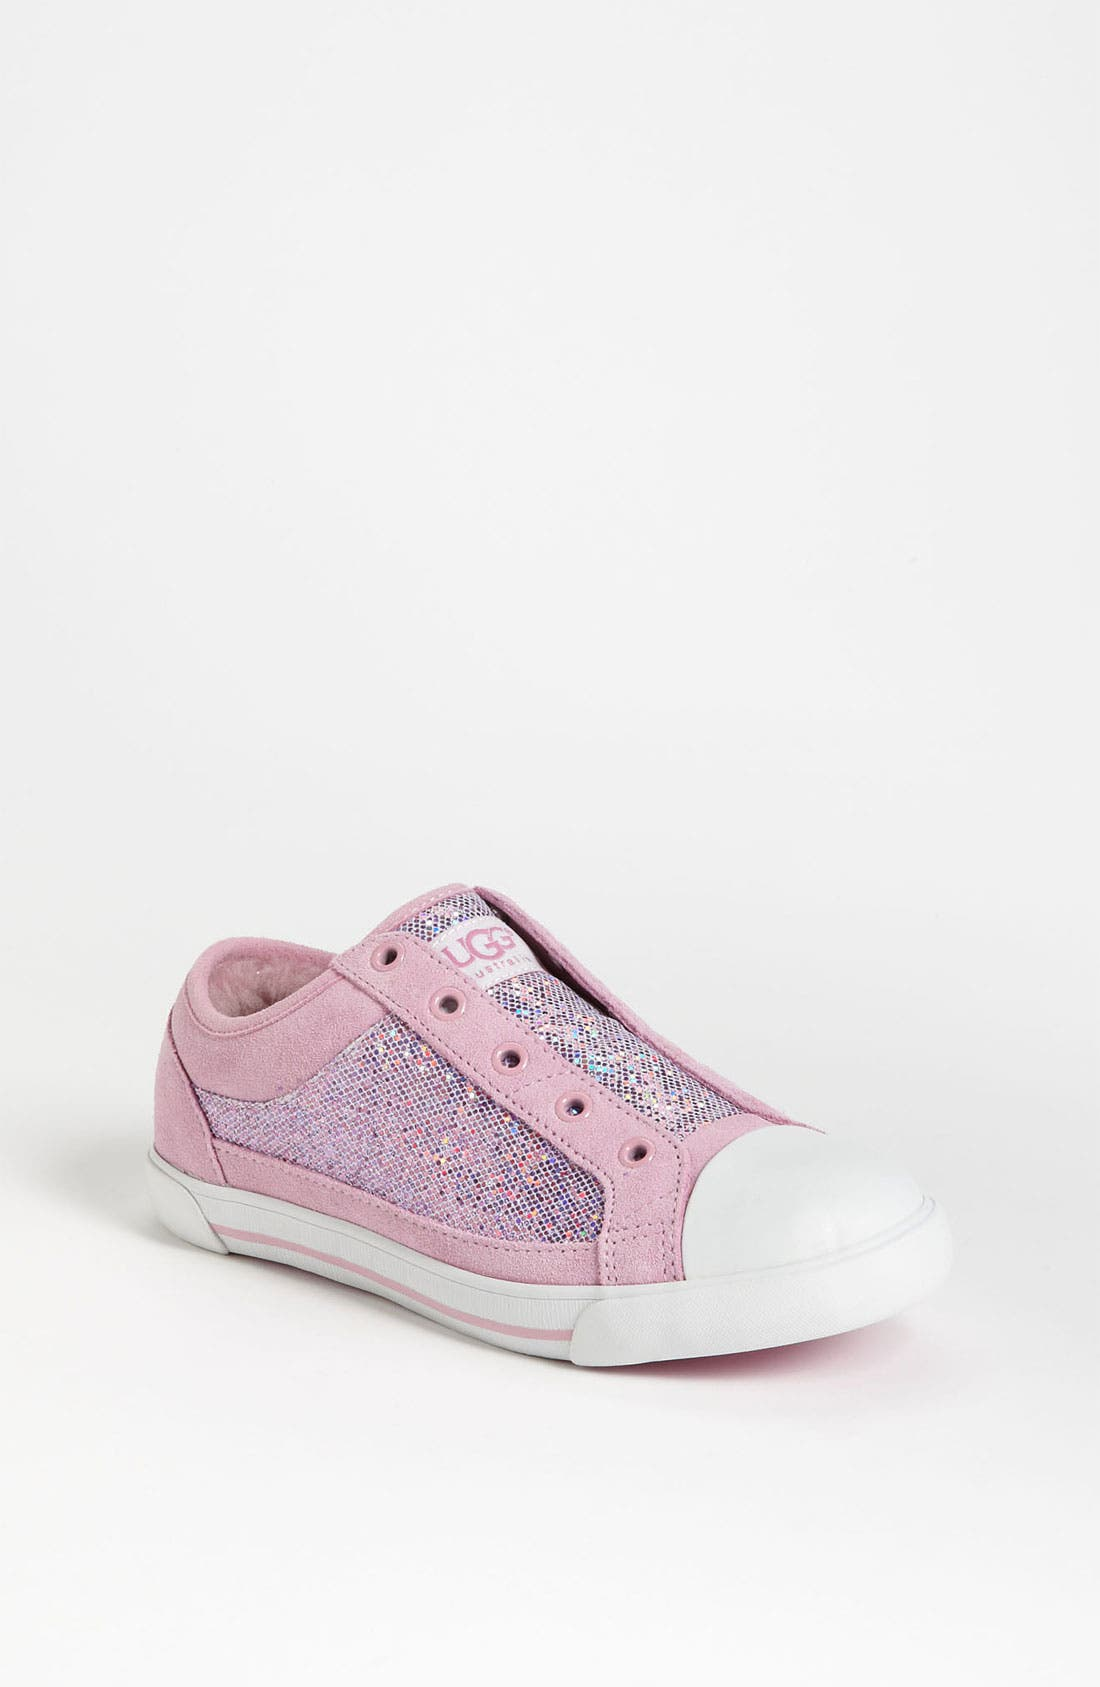 Main Image - UGG® Australia 'Laela' Sneaker (Toddler, Little Kid & Big Kid)